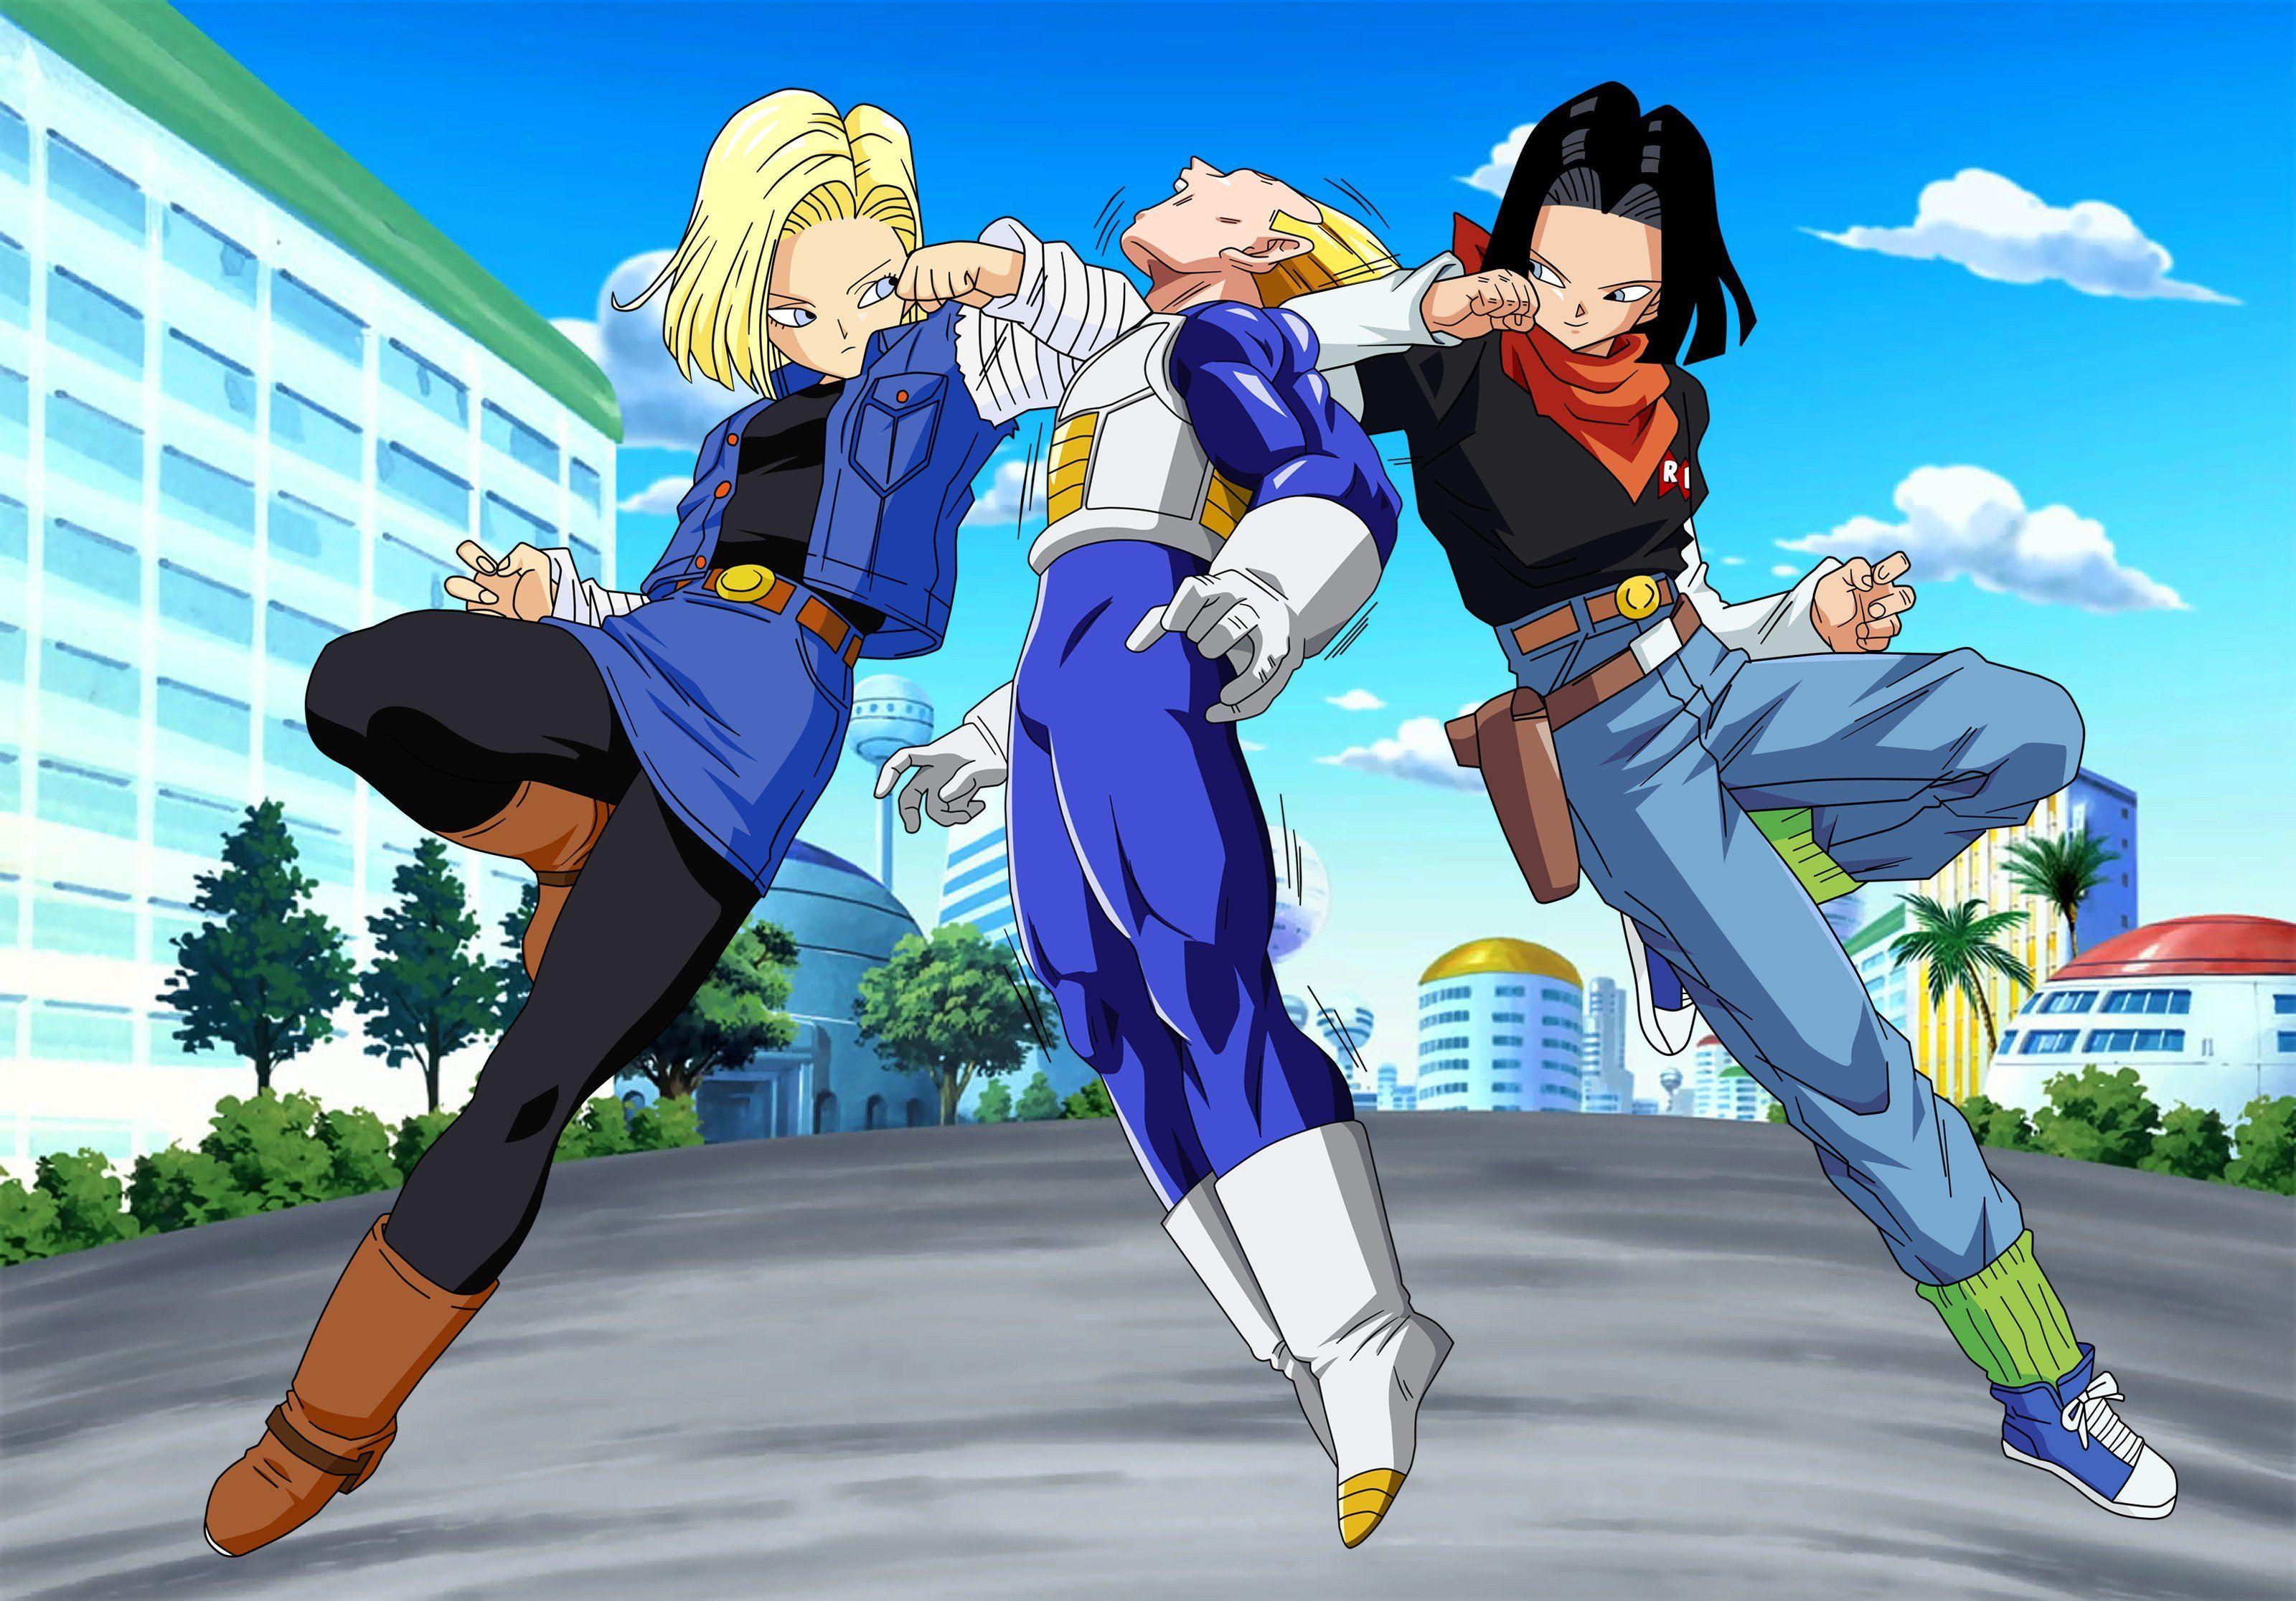 Download Hd Wallpapers Of 156182 Dragon Ball Dragon Ball Z Vegeta Android 18 Android 17 Free Download Hi Anime Dragon Ball Super Dragon Ball Dragon Ball Z